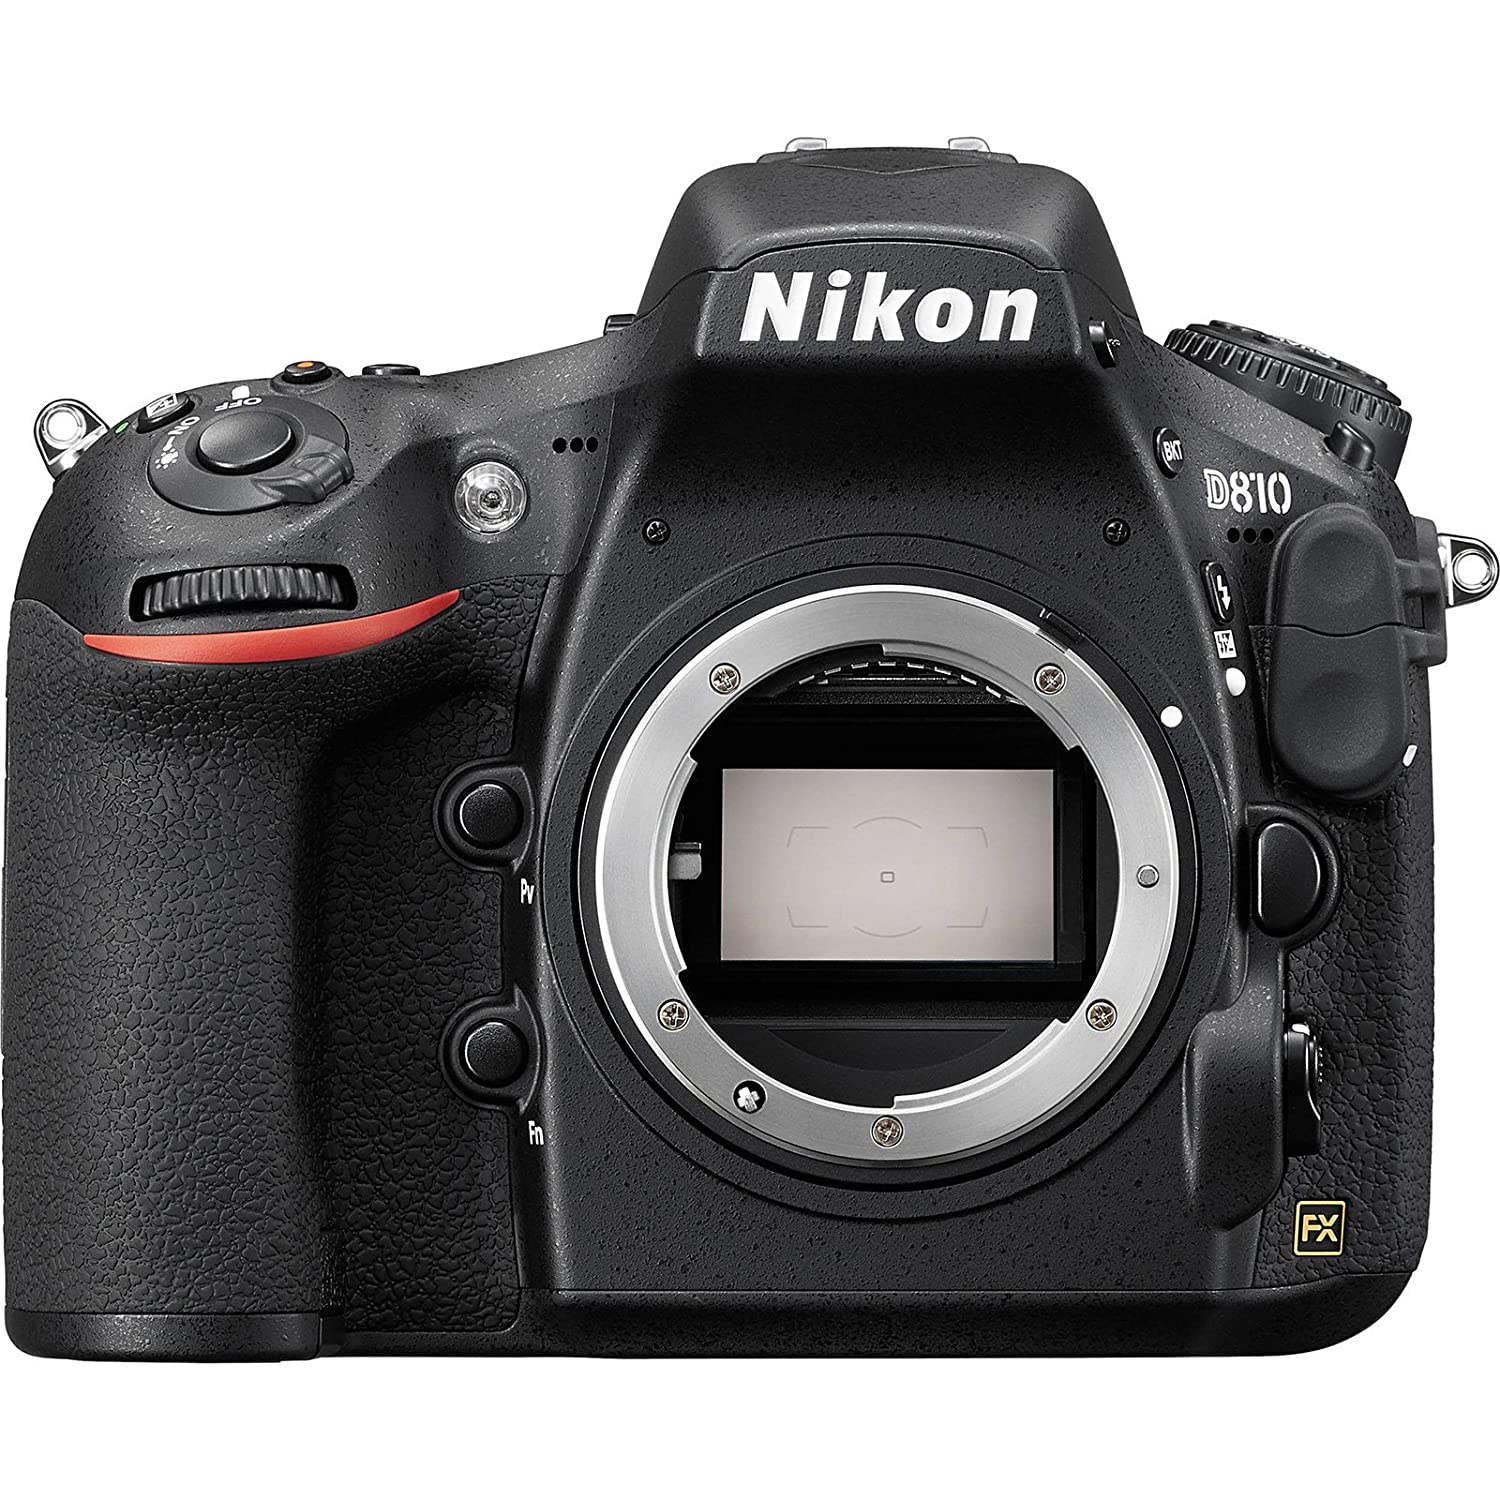 which camera is best for wedding photography